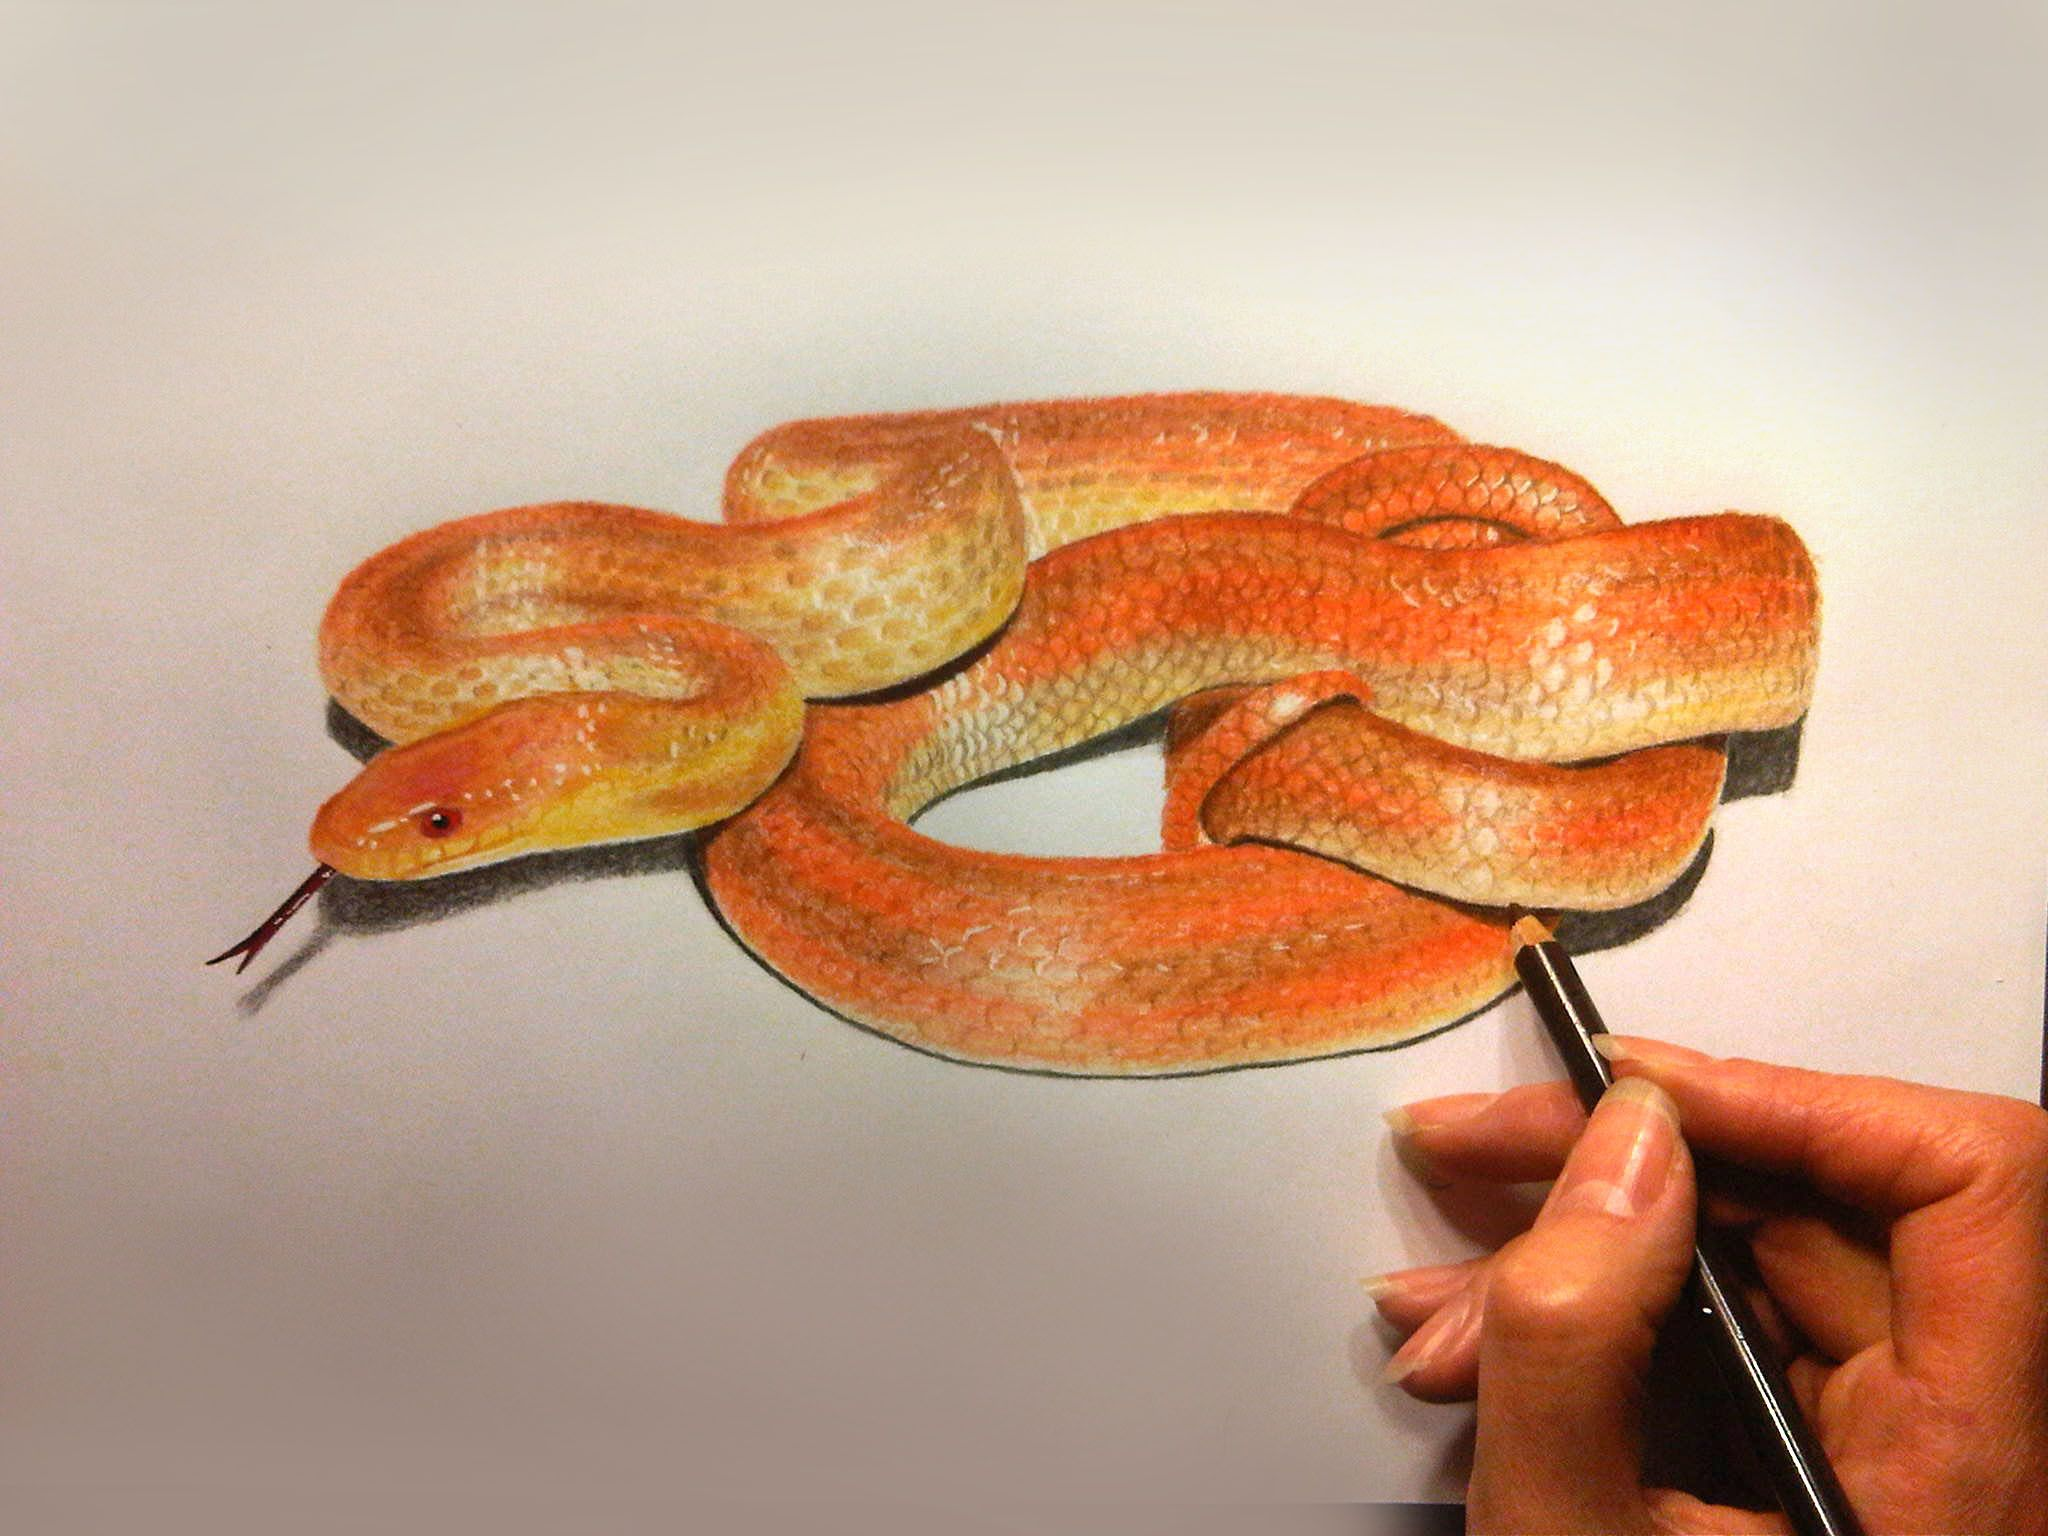 png freeuse How to draw a snake with colored pencils in